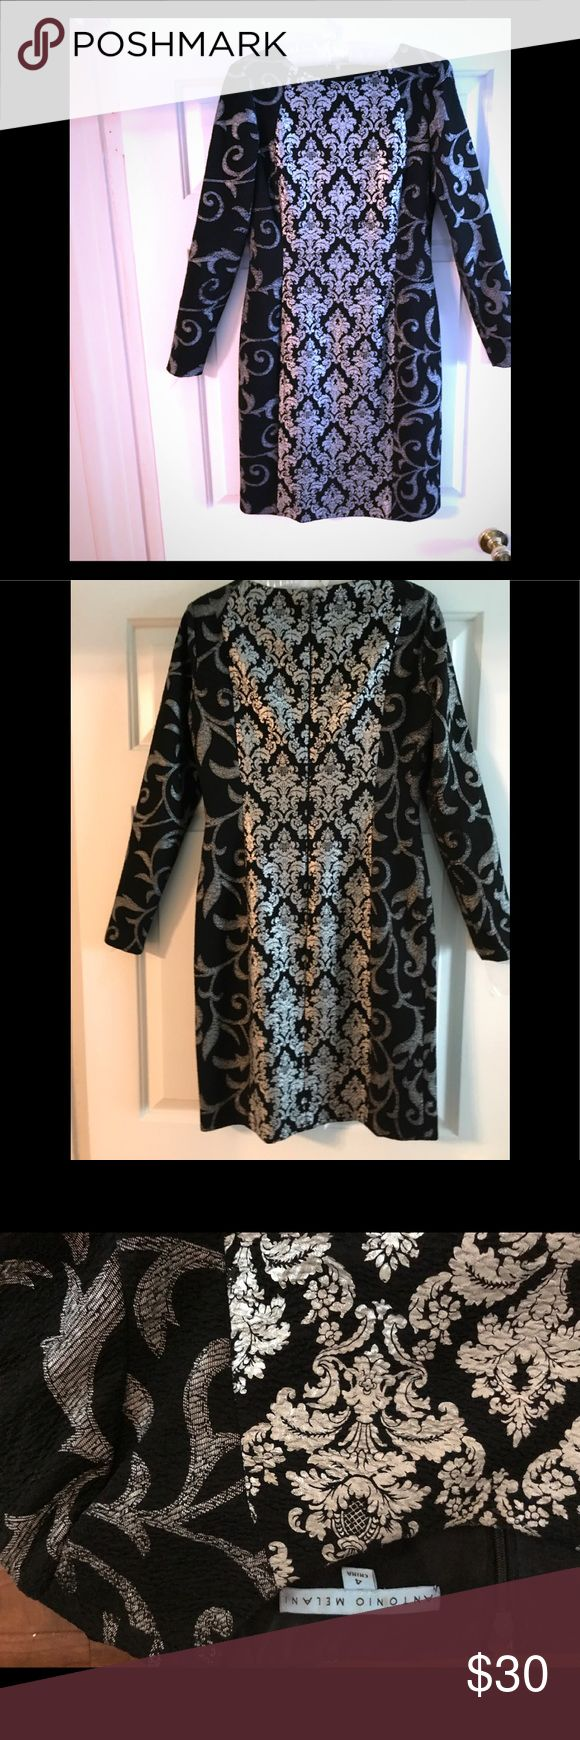 Black and silver dress Long sleeve A-line  dress with classic lines. Beautiful contrasting black and silver patterns. Calvin Klein Dresses Long Sleeve